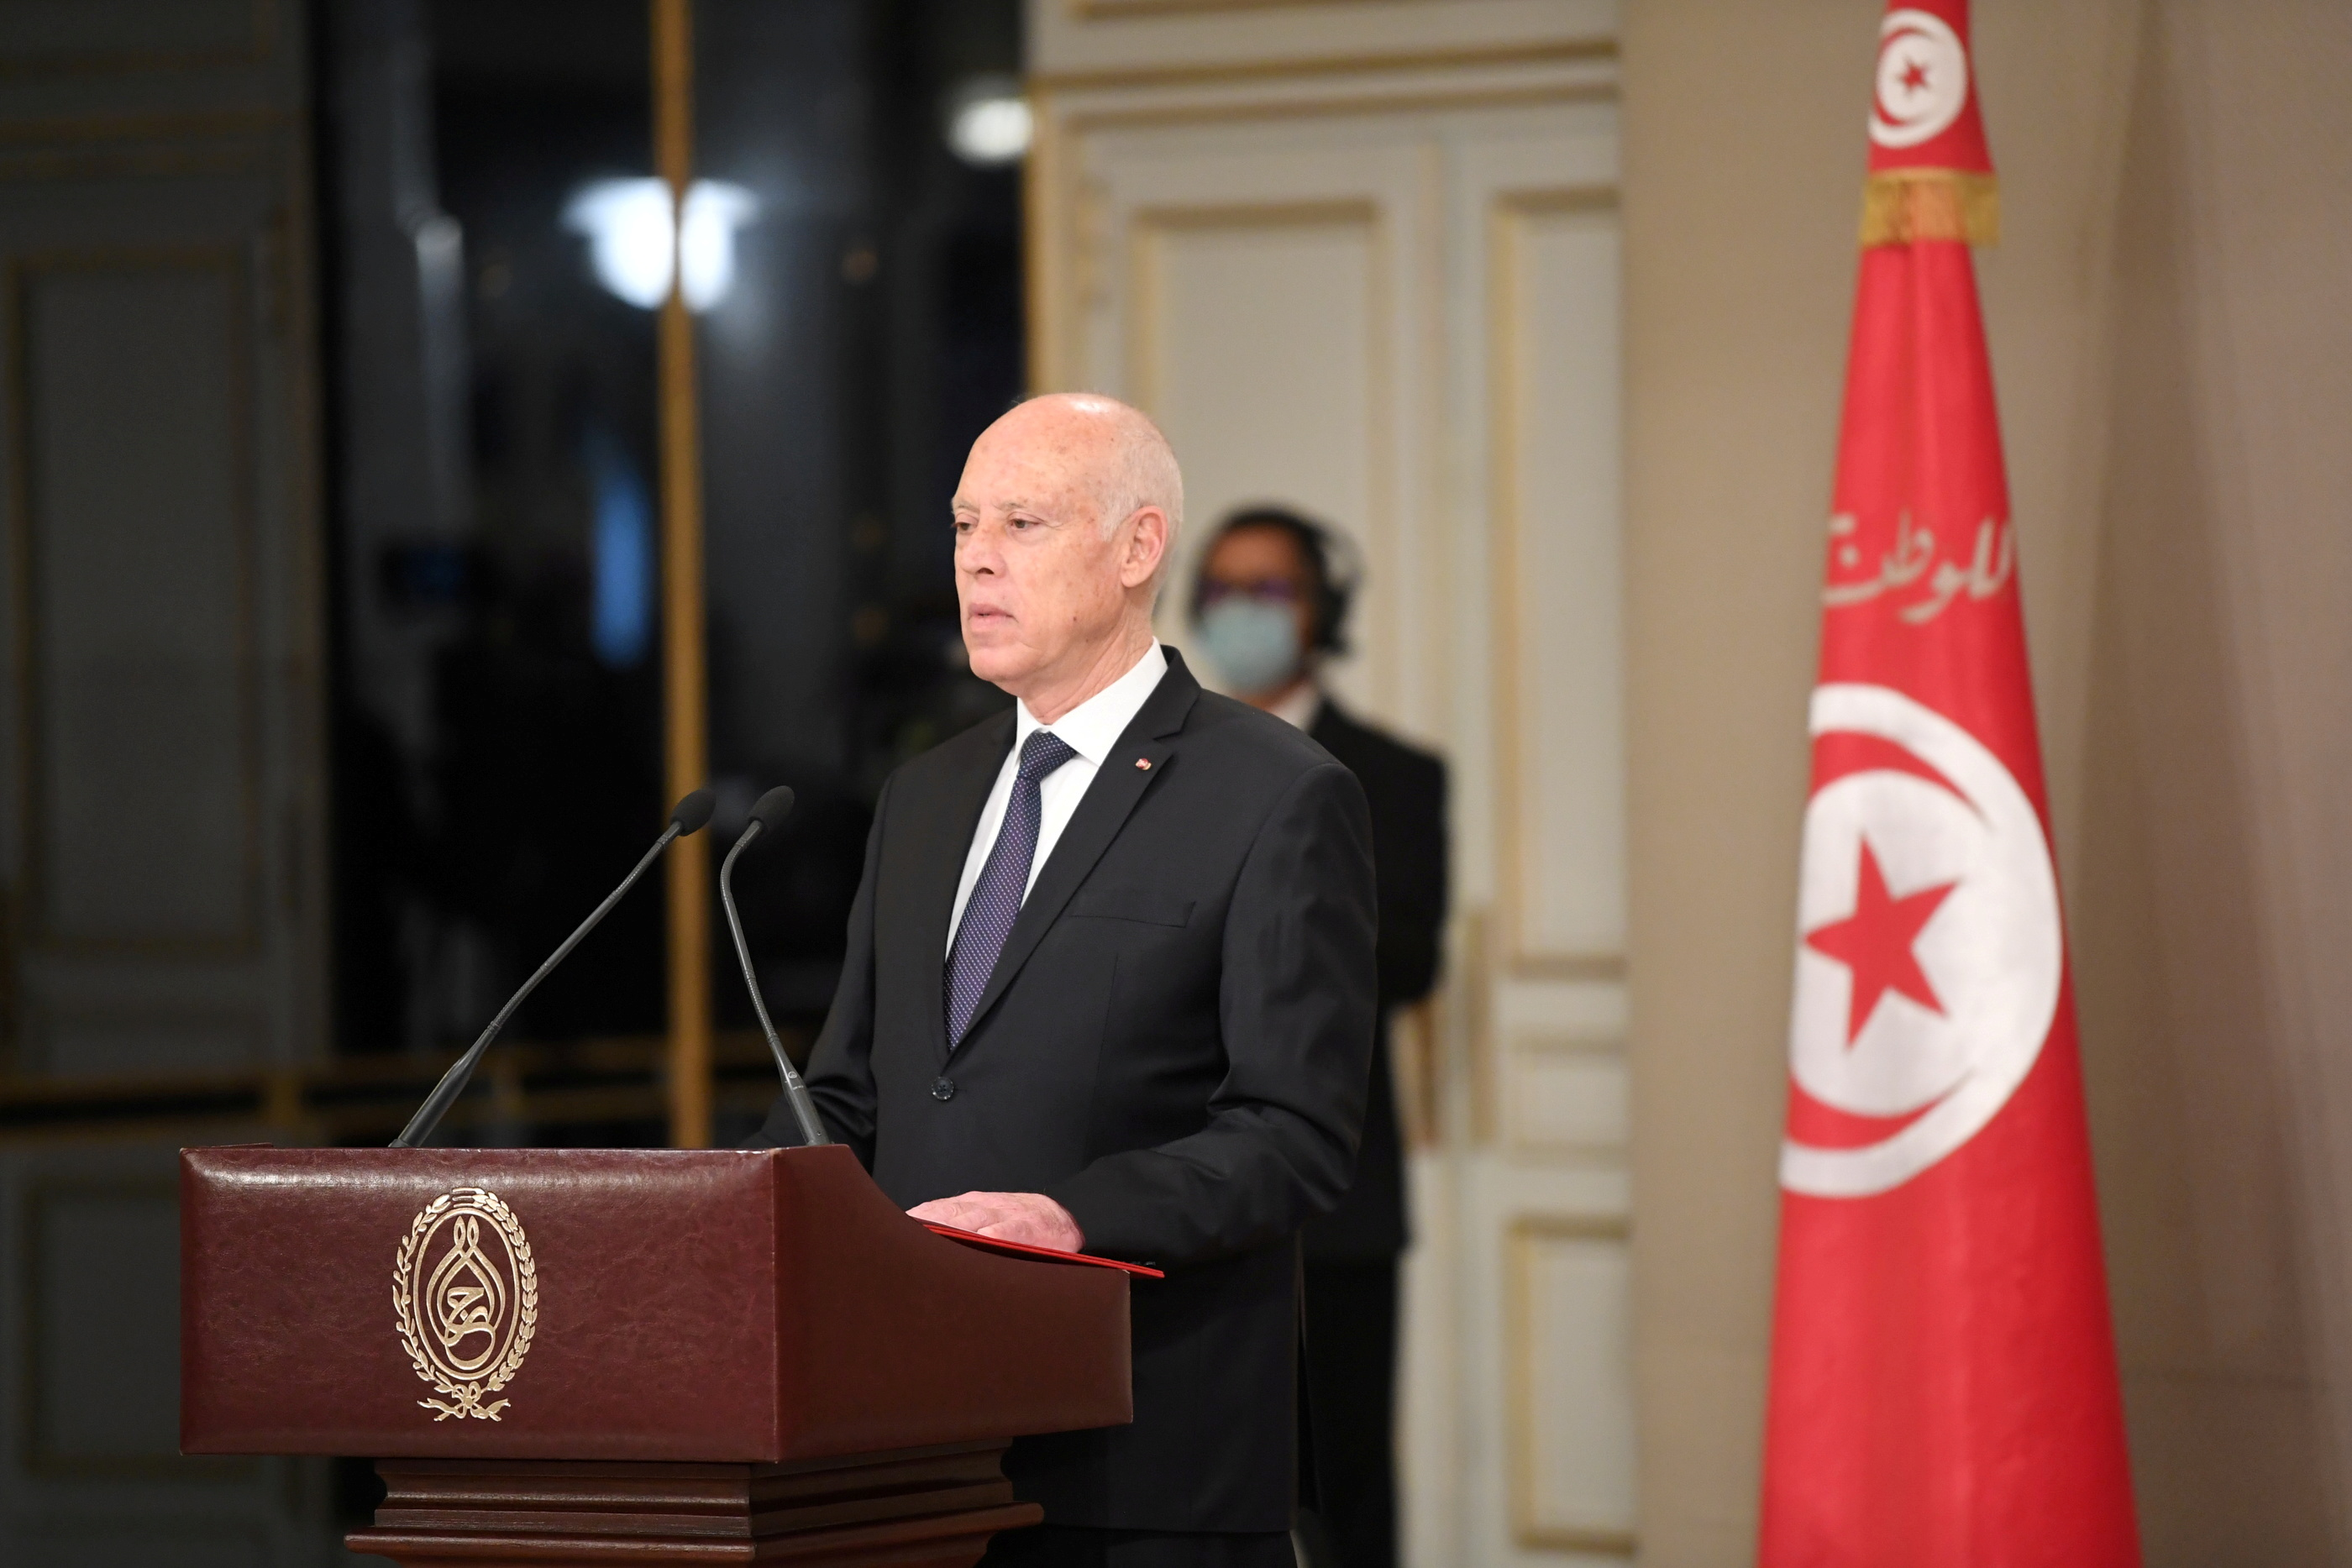 Tunisia's President Kais Saied speaks during the country's new government swearing-in ceremony, in Tunis, Tunisia October 11, 2021. Tunisian Presidency/Handout via REUTERS